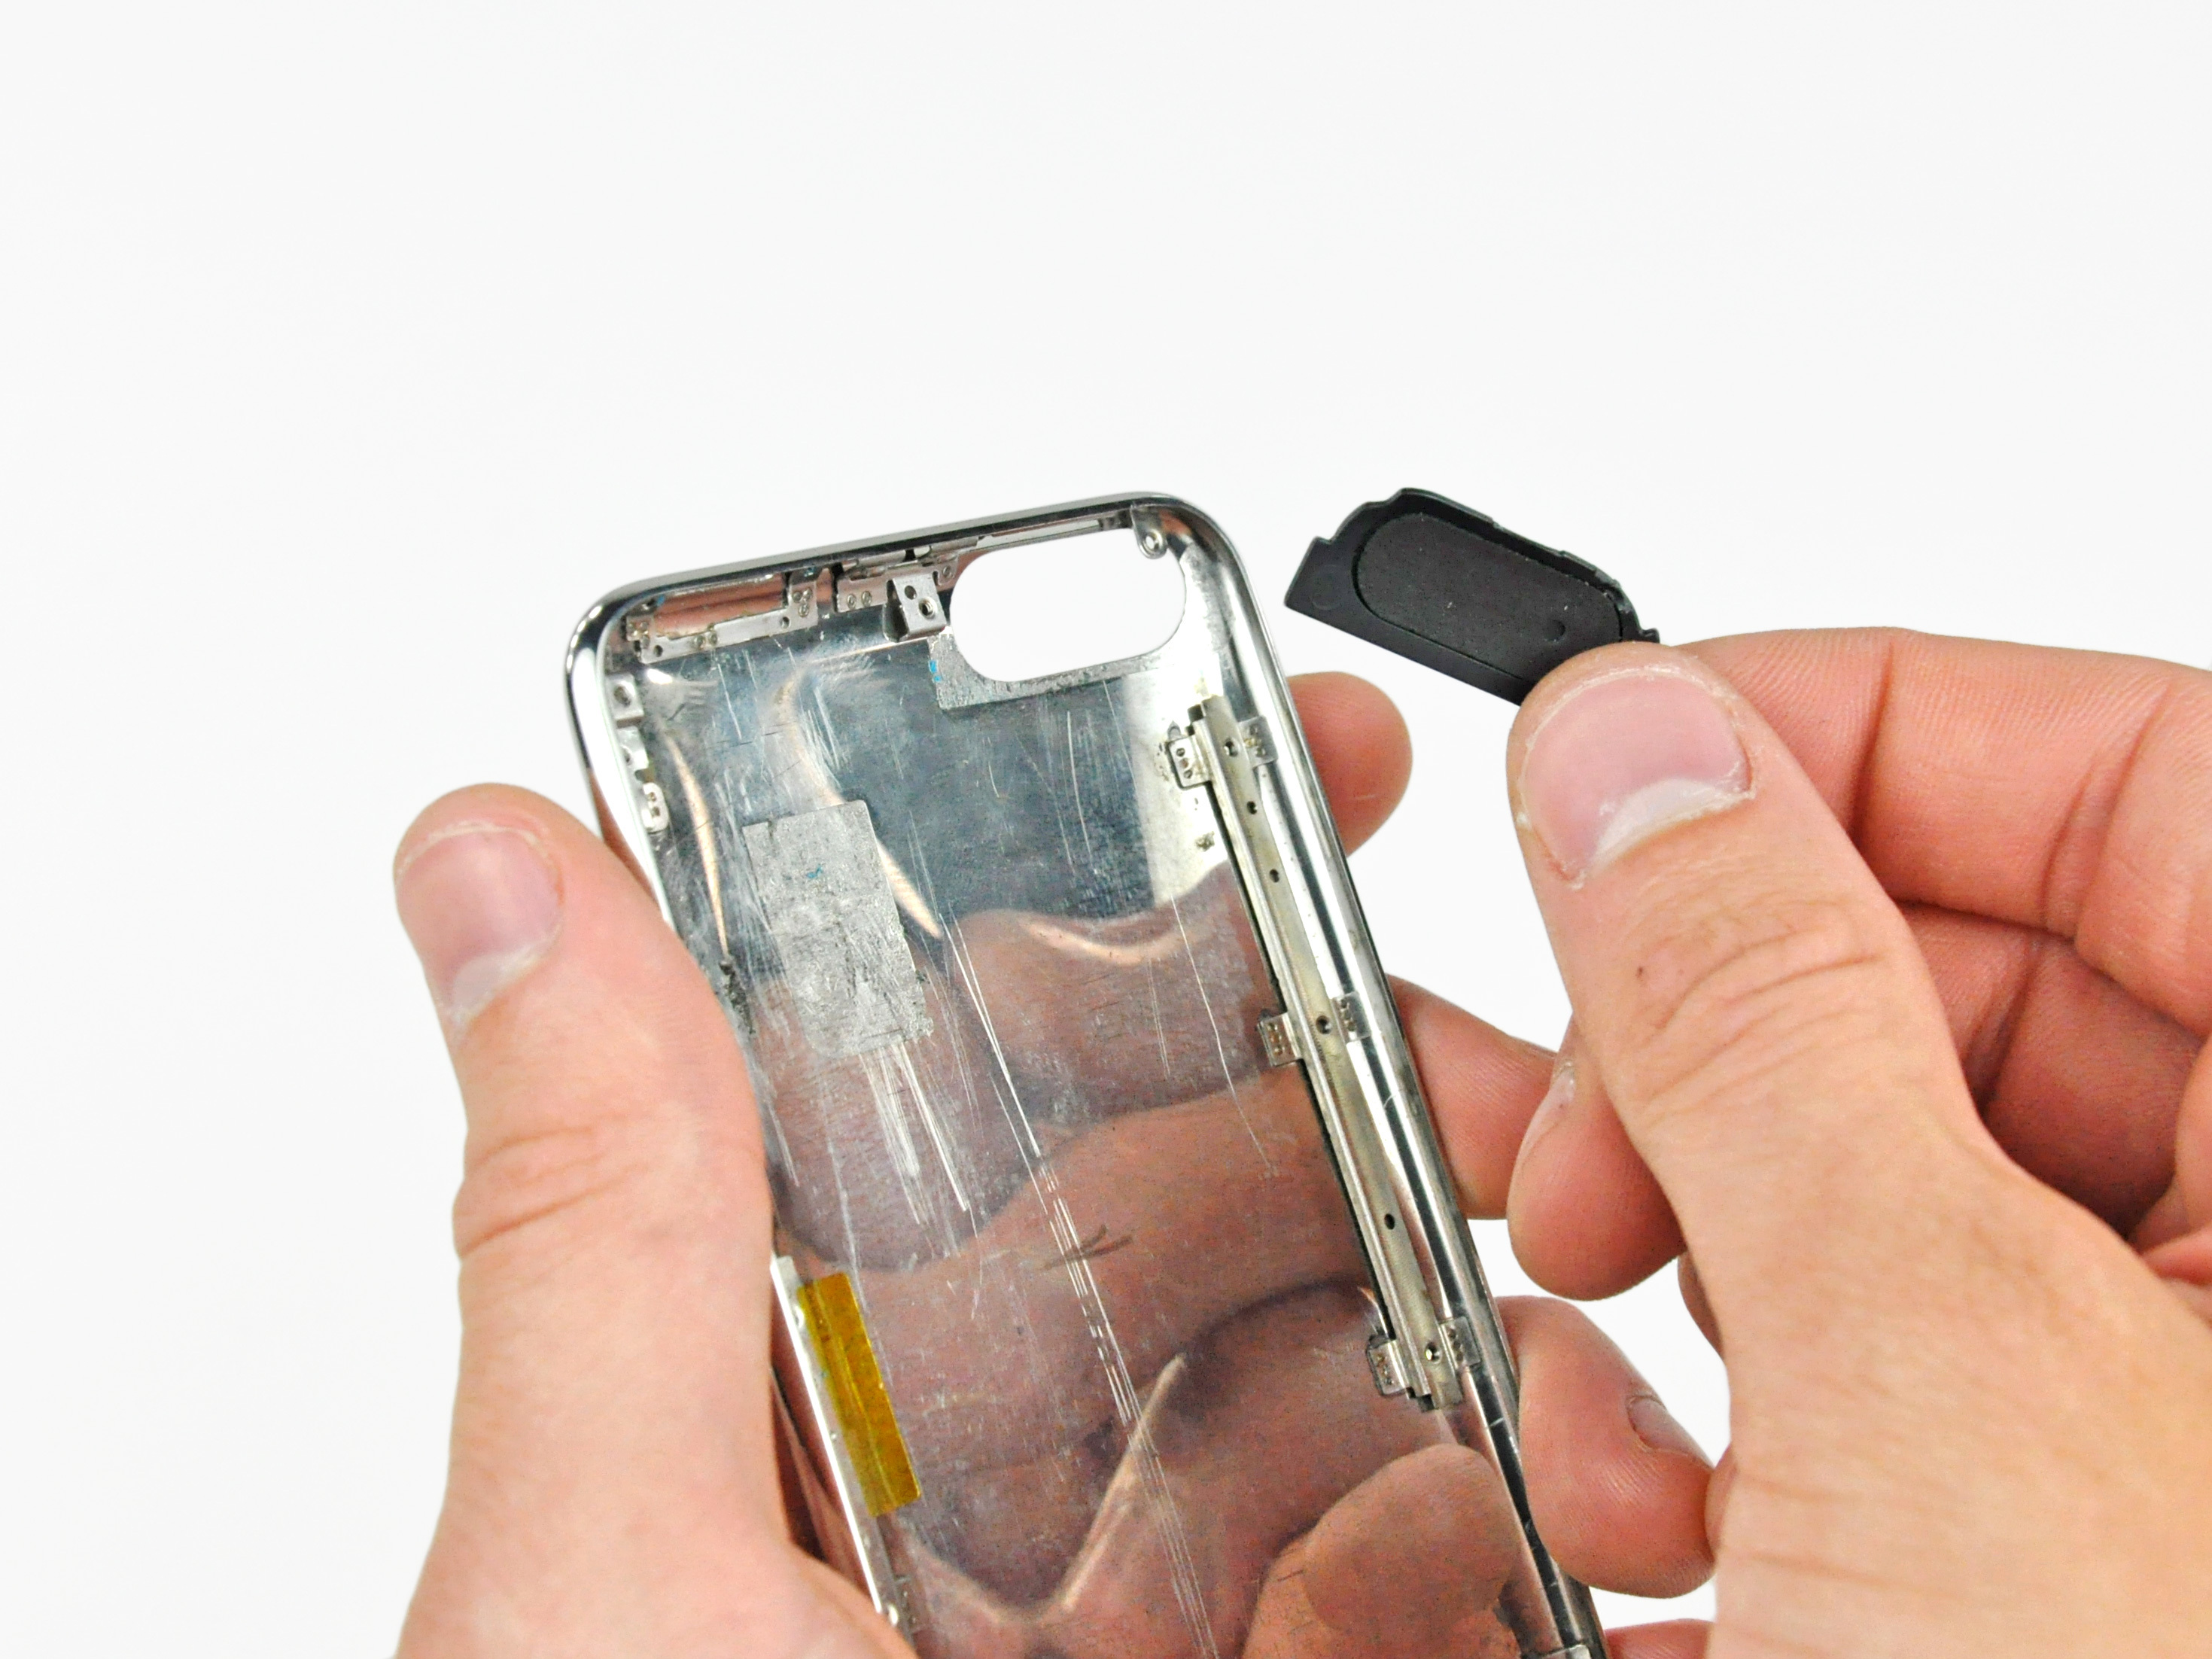 Ipod touch 2nd generation rear panel replacement ifixit repair guide.